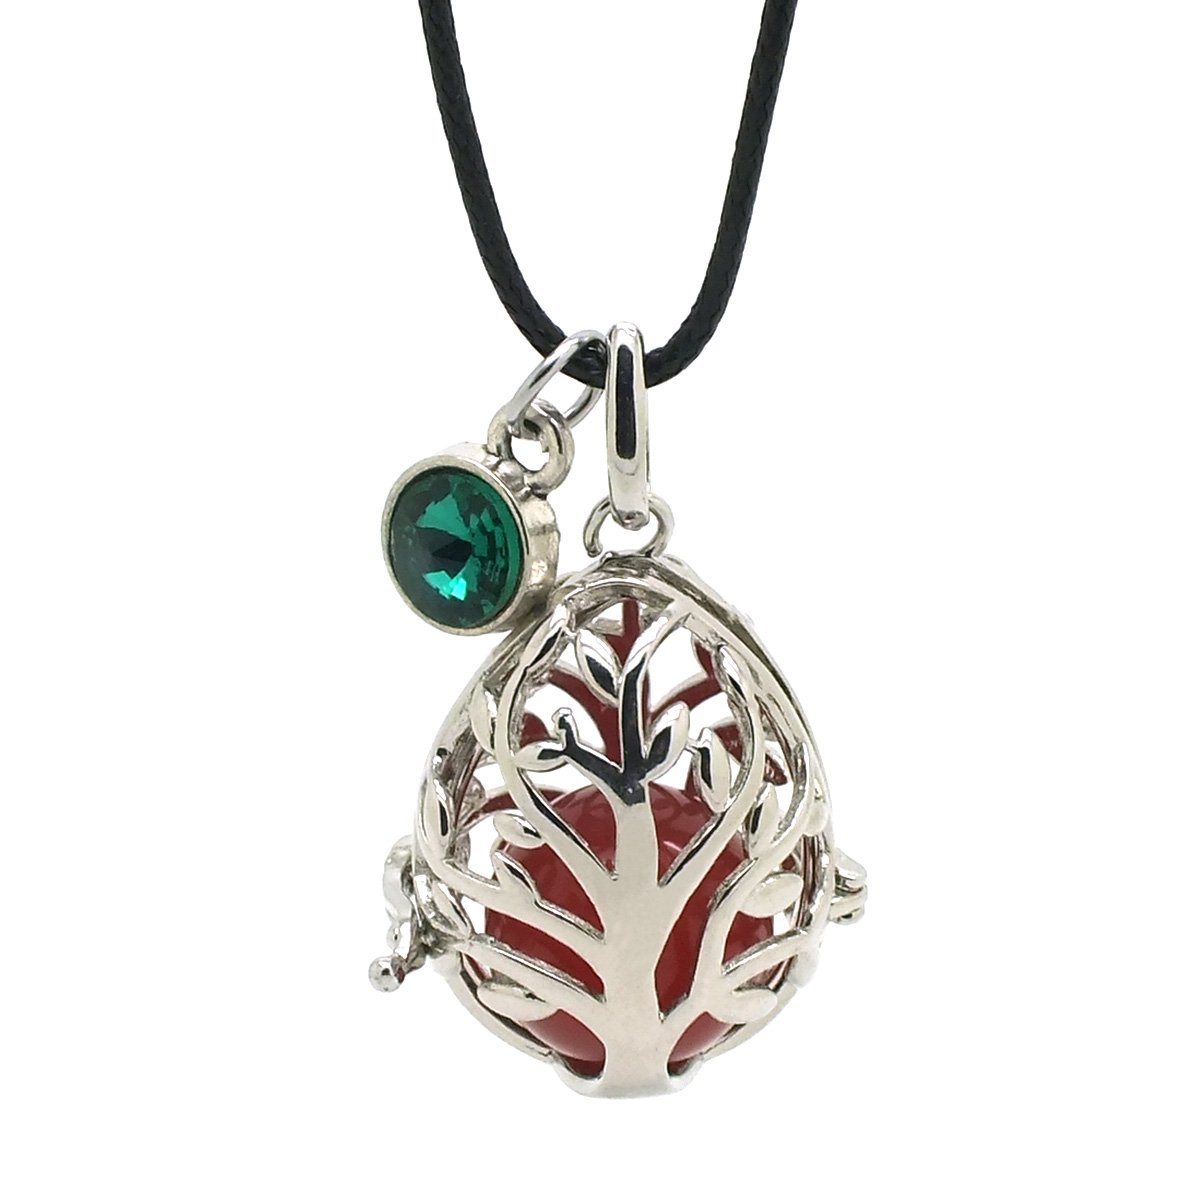 Efantina Tree Of Life Pendant Necklace Jewelry with Natural Green Aventurine Gemstone YiFan Jewelry